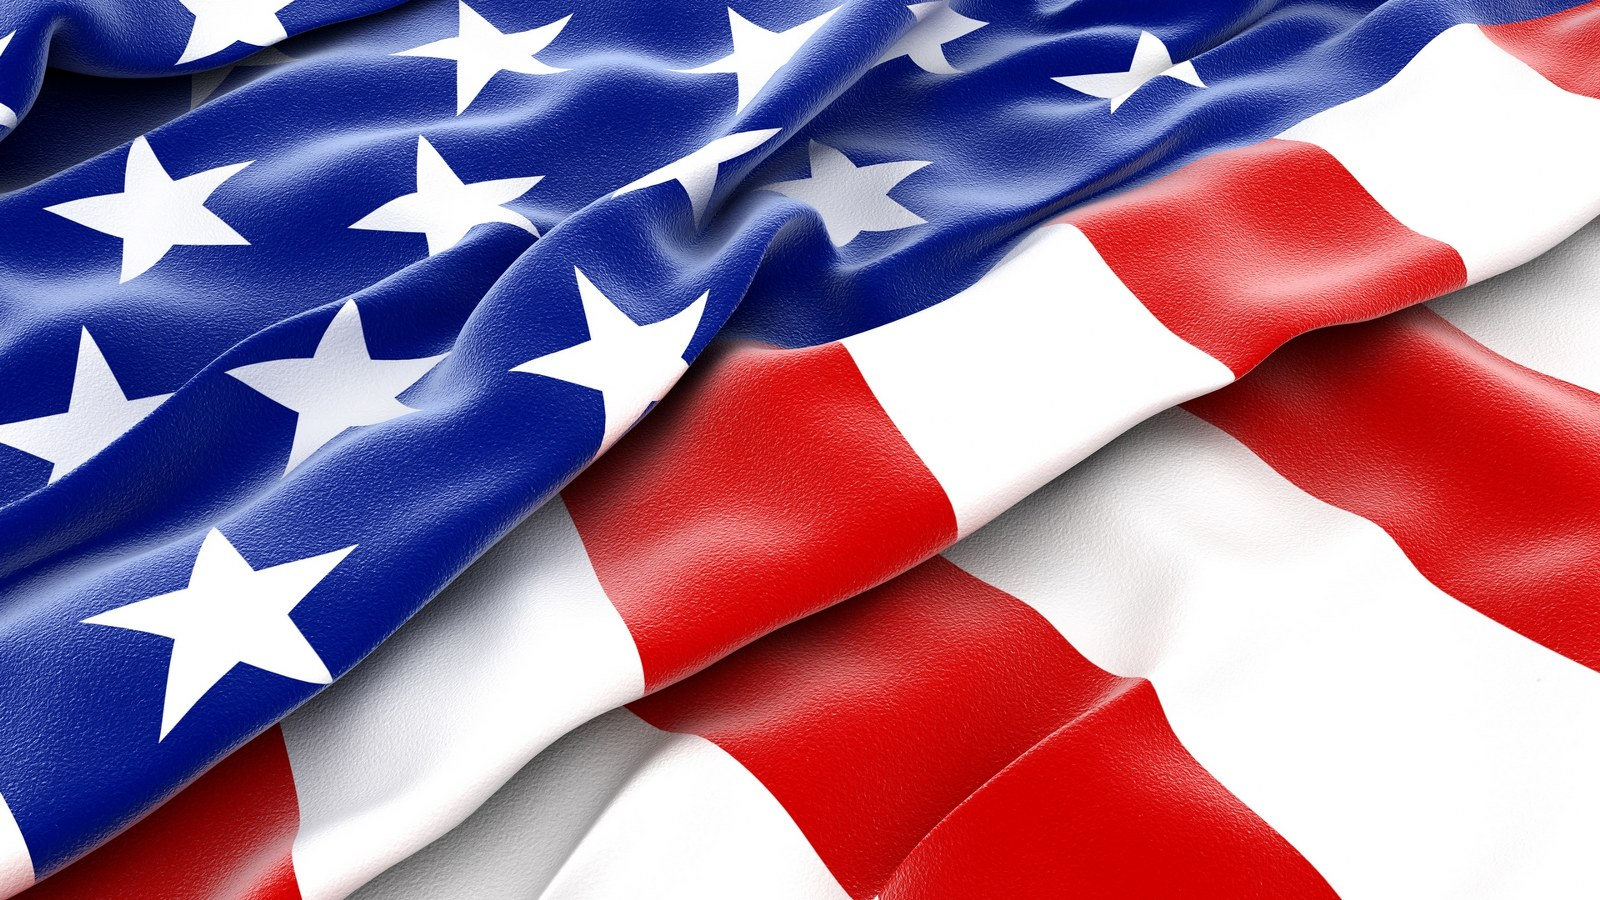 Flag Desktop Background: American Flag Wallpaper And Background Image